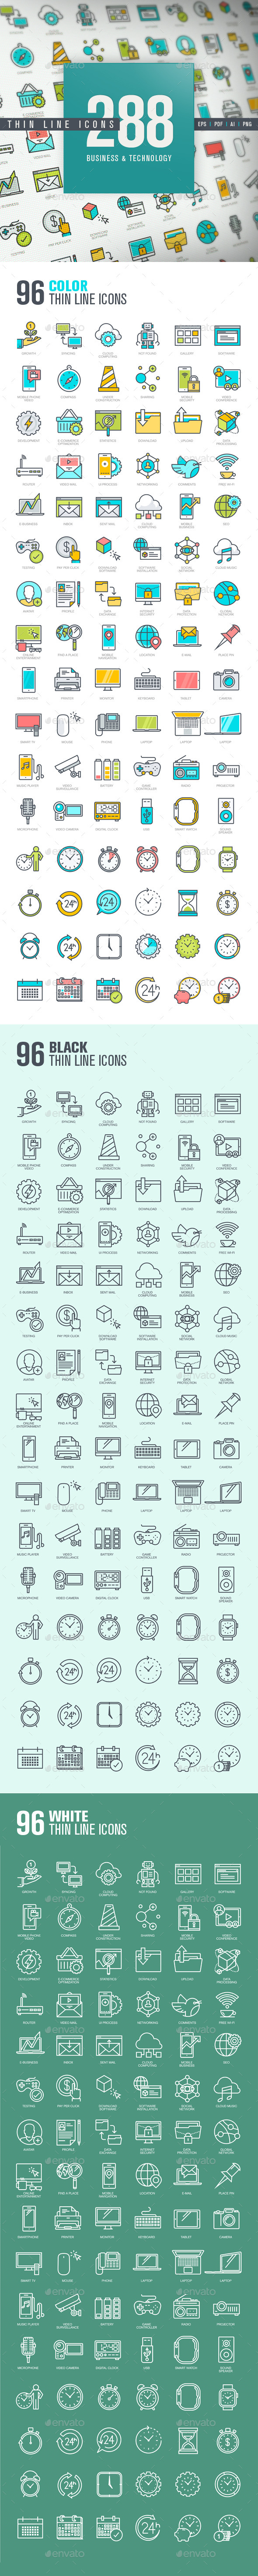 Set of Thin Line Icons for Business and Technology - Technology Icons